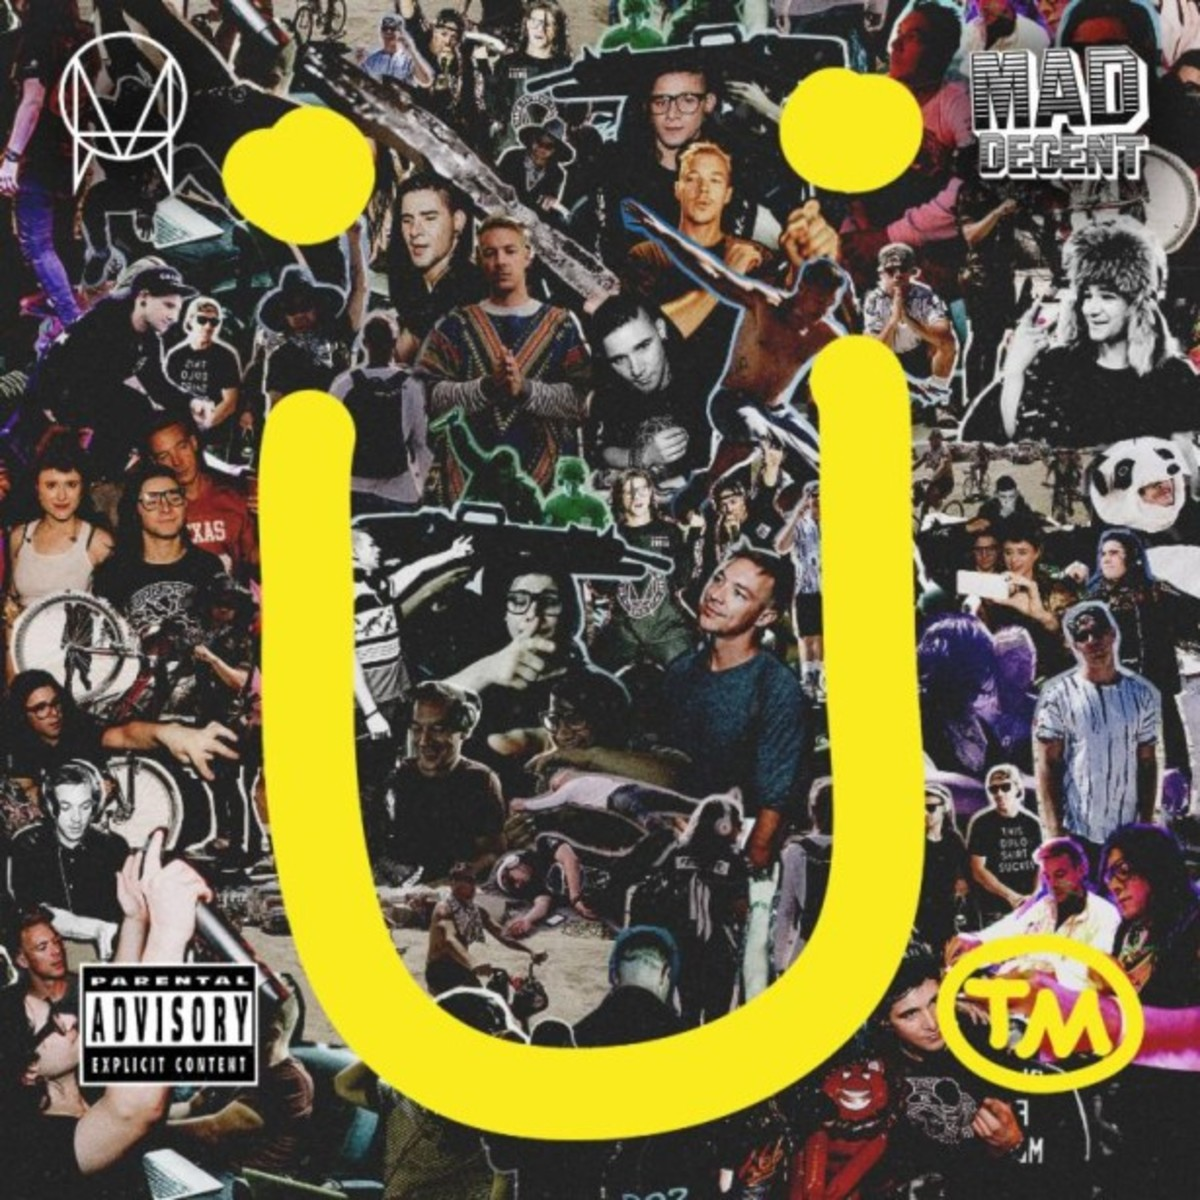 Jack U Drop New Album With Justin Bieber